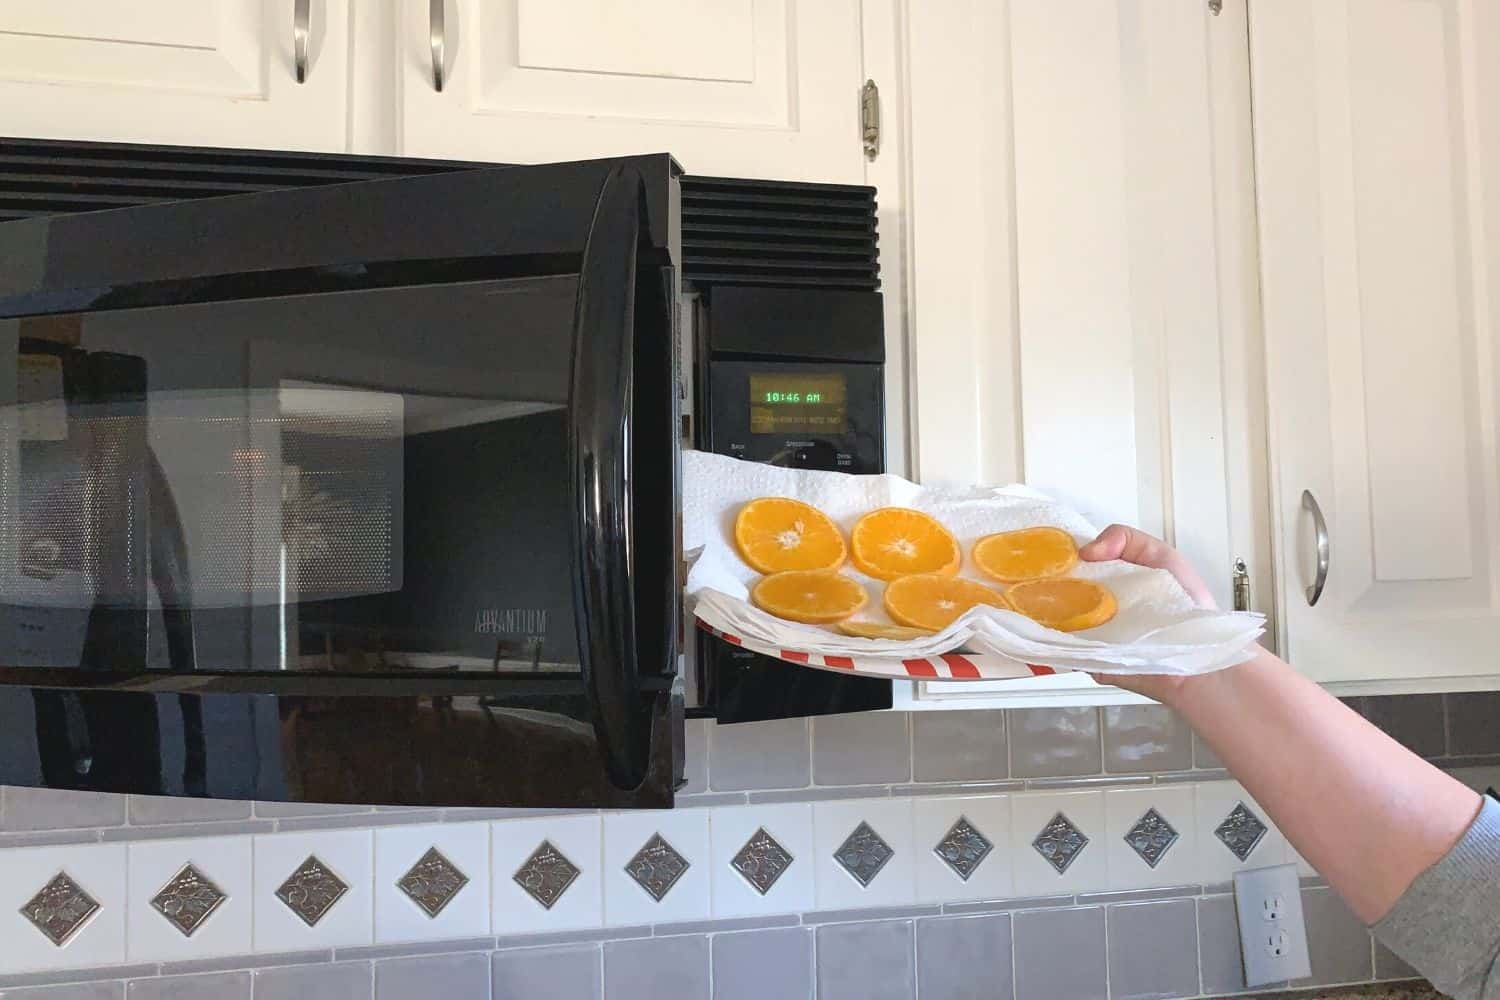 putting oranges slices in the microwave